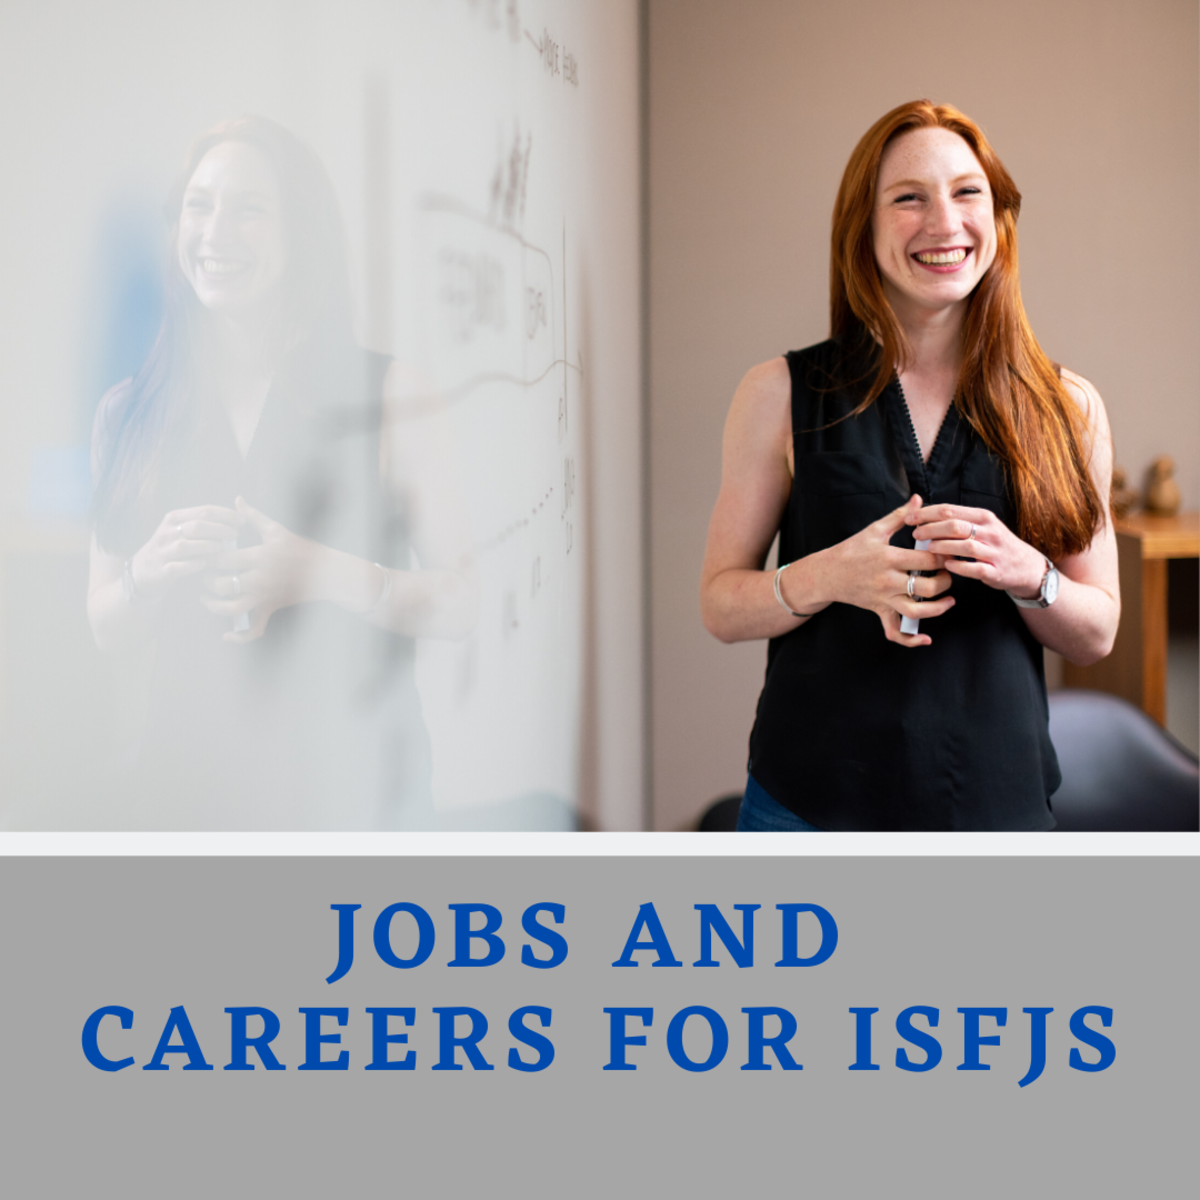 Read on to find the perfect job for your ISFJ personality!